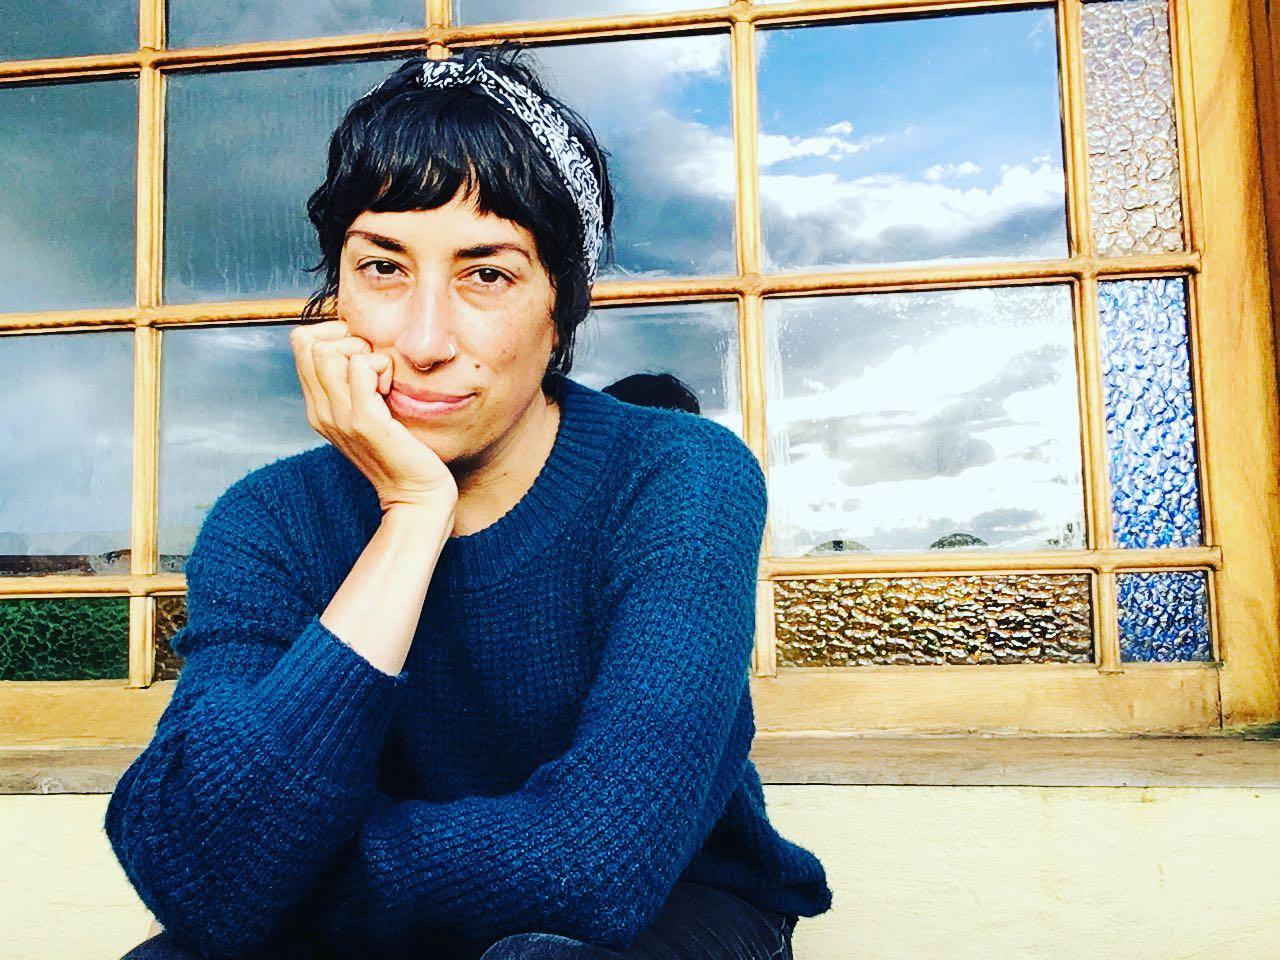 portrait of a person in a blue shirt and headband, sitting in front of a window reflecting a daytime sky, filled with clouds and sunlight